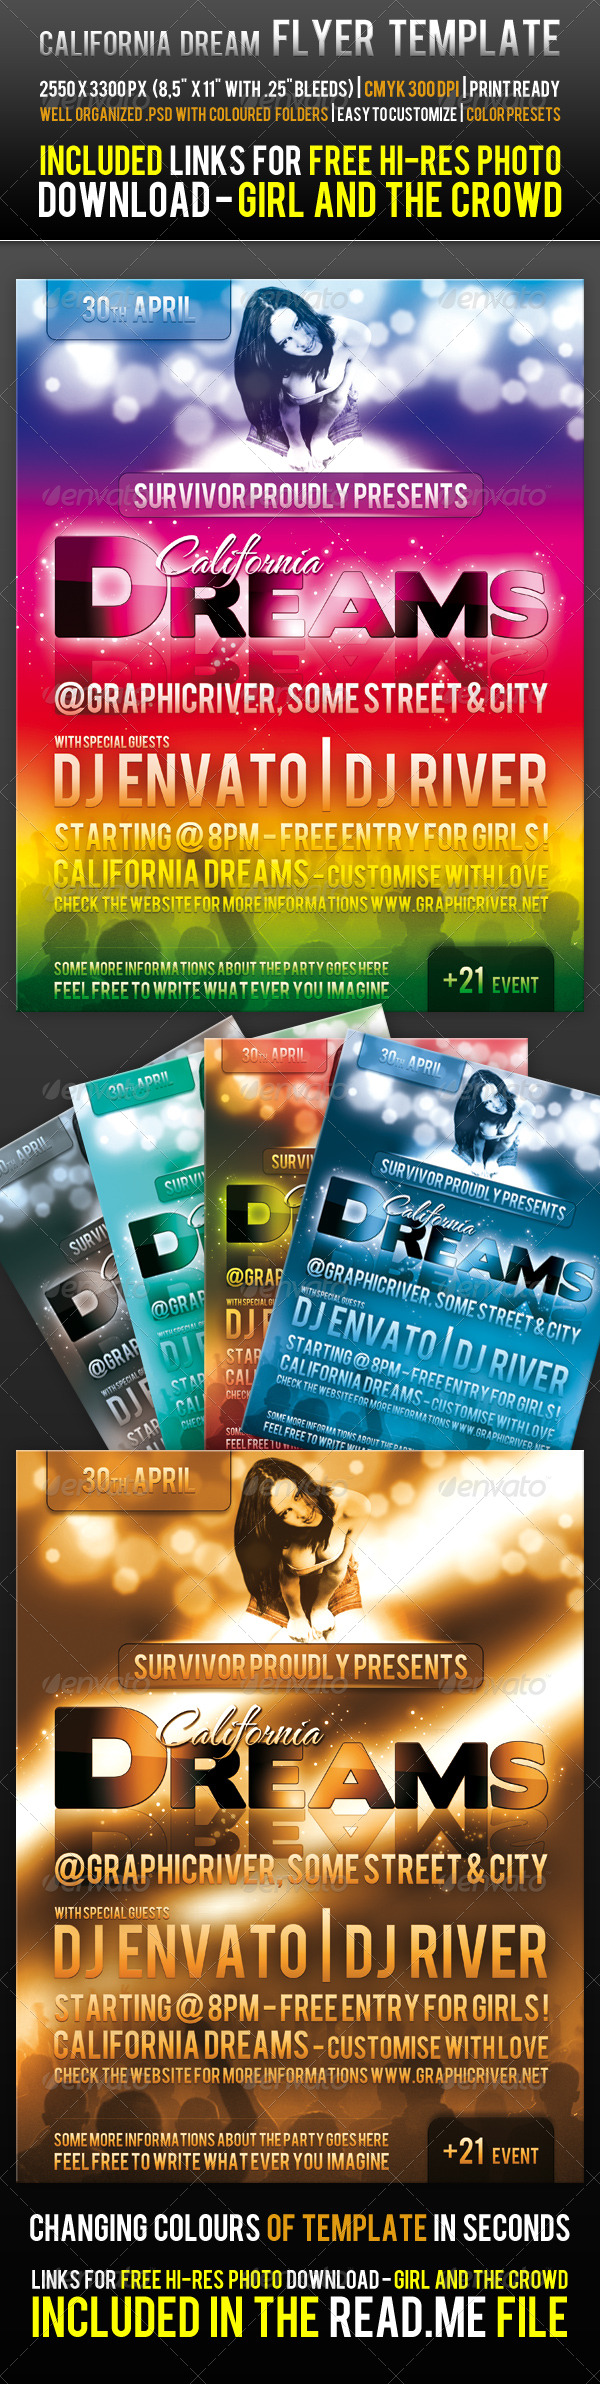 Print Templates : California Dream Flyer Template GraphicRiver 226198 - Flyers Events Clubs & Parties